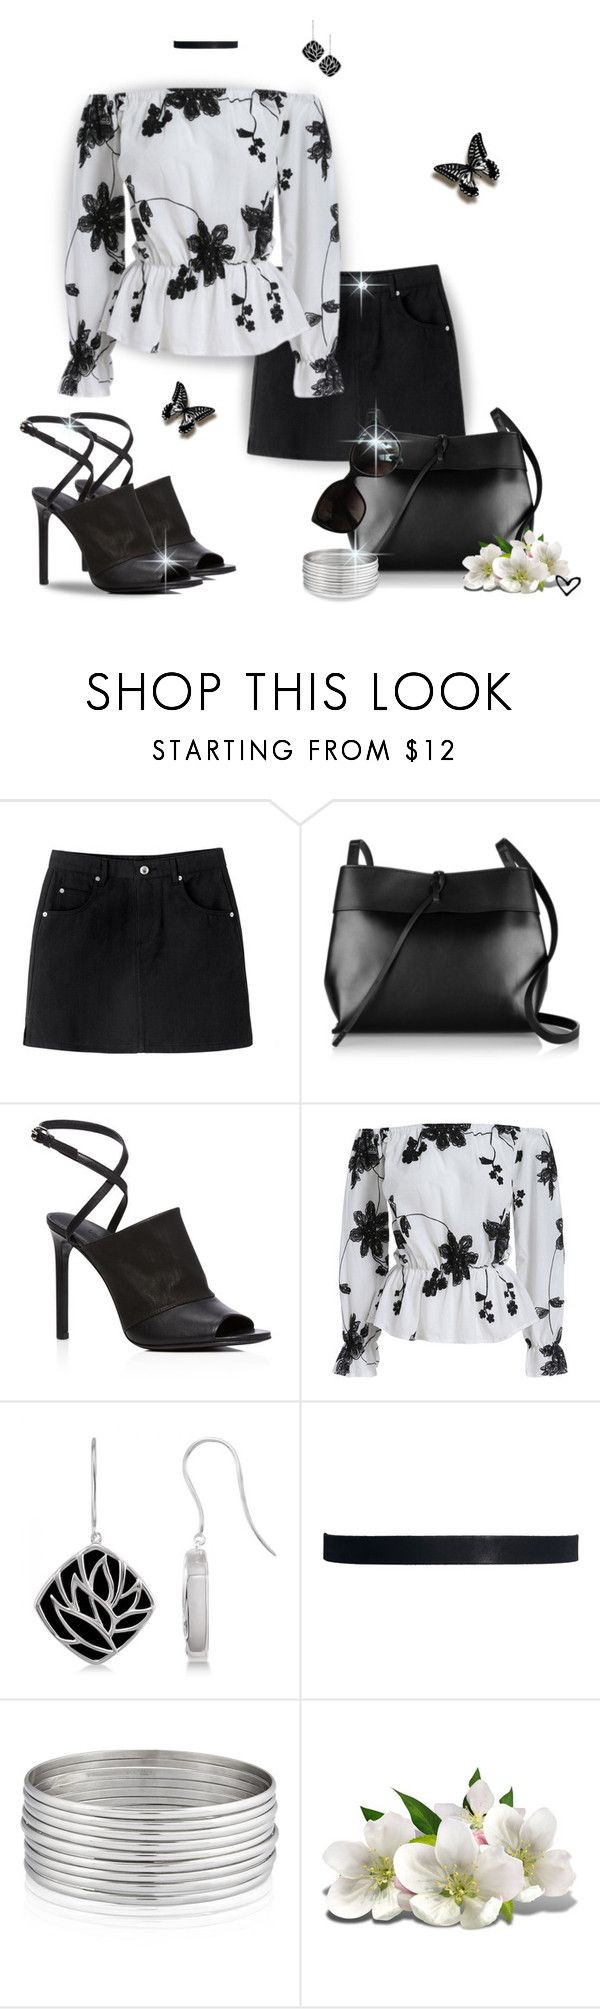 """""""~SheIn~ Black & White Floral Off the Shoulder Blouse ~"""" by justwanderingon ❤ liked on Polyvore featuring Kara, Vince, Allurez, ASOS, West Coast Jewelry, WALL, Chanel, black, MINISKIRT and offtheshoulder"""